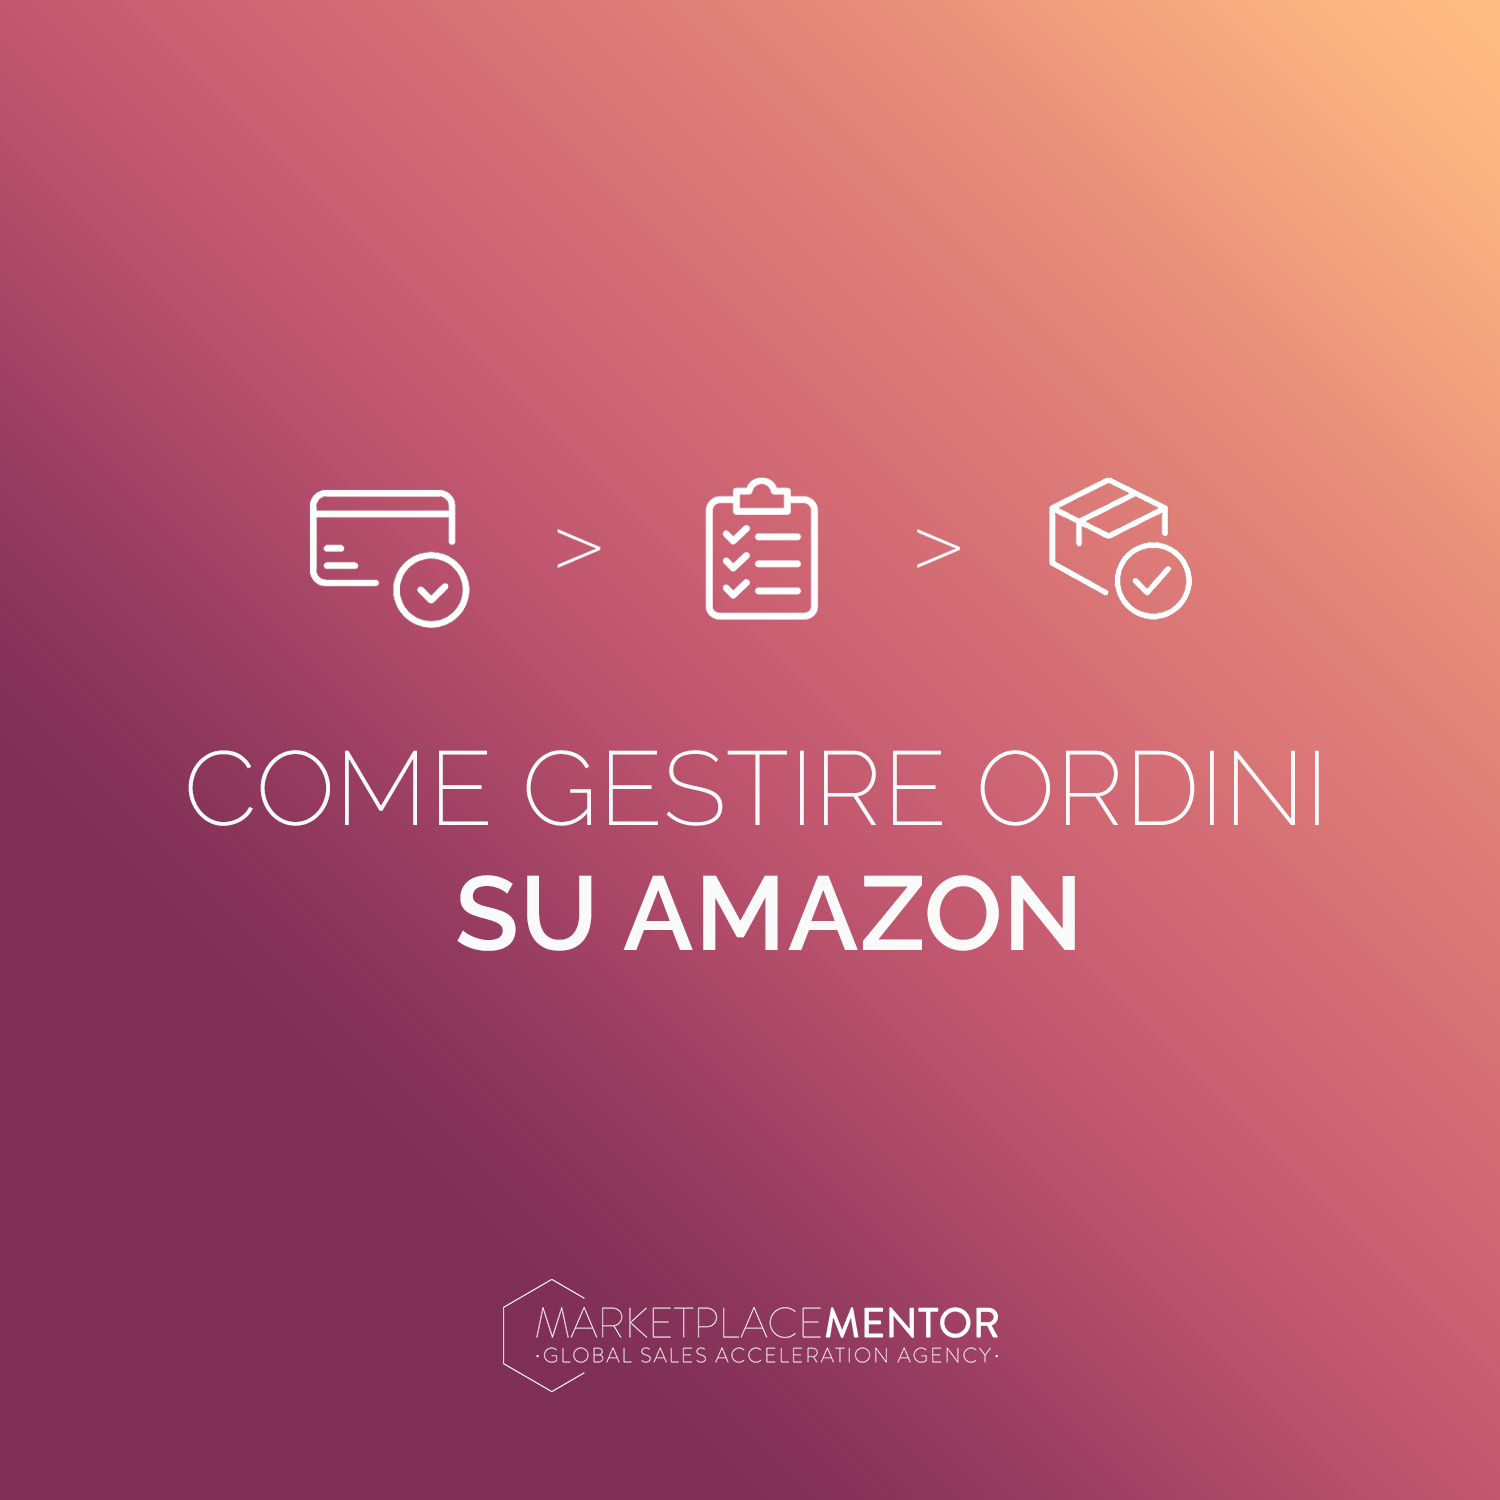 Come gestire ordini su Amazon in maniera puntuale